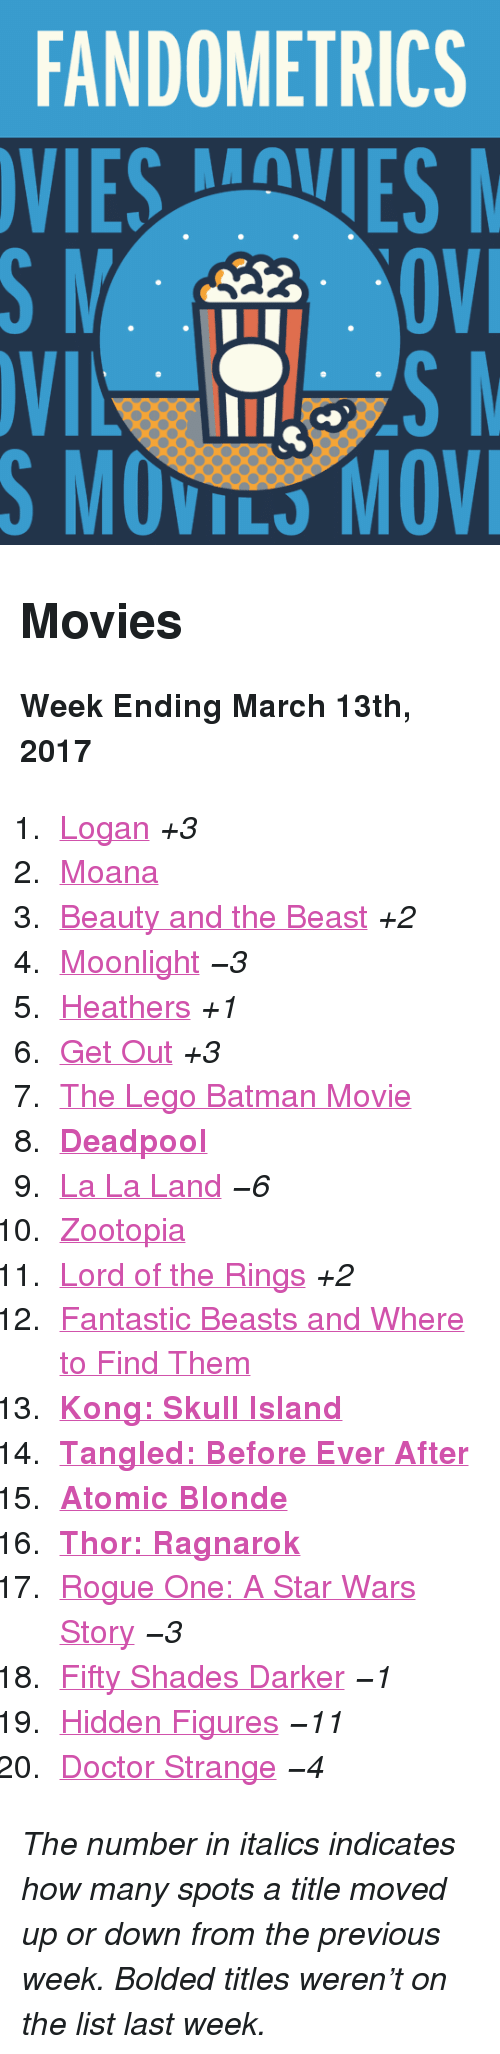 """Batman, Doctor, and Lego: FANDOMETRICS  VIESVES  S MOVILS MOV <h2>Movies</h2><p><b>Week Ending March 13th, 2017</b></p><ol><li><a href=""""http://www.tumblr.com/search/logan"""">Logan</a><i>+3</i></li>  <li><a href=""""http://www.tumblr.com/search/moana"""">Moana</a></li>  <li><a href=""""http://www.tumblr.com/search/beauty%20and%20the%20beast"""">Beauty and the Beast</a><i>+2</i></li>  <li><a href=""""http://www.tumblr.com/search/moonlight"""">Moonlight</a><i>−3</i></li>  <li><a href=""""http://www.tumblr.com/search/heathers"""">Heathers</a><i>+1</i></li>  <li><a href=""""http://www.tumblr.com/search/get%20out"""">Get Out</a><i>+3</i></li>  <li><a href=""""http://www.tumblr.com/search/lego%20batman"""">The Lego Batman Movie</a></li>  <li><b><a href=""""http://www.tumblr.com/search/deadpool"""">Deadpool</a></b></li>  <li><a href=""""http://www.tumblr.com/search/la%20la%20land"""">La La Land</a><i><i>−6</i></i></li>  <li><a href=""""http://www.tumblr.com/search/zootopia"""">Zootopia</a></li>  <li><a href=""""http://www.tumblr.com/search/lotr"""">Lord of the Rings</a><i>+2</i></li>  <li><a href=""""http://www.tumblr.com/search/fantastic%20beasts%20and%20where%20to%20find%20them"""">Fantastic Beasts and Where to Find Them</a></li>  <li><a href=""""http://www.tumblr.com/search/kong%20skull%20island""""><b>Kong: Skull Island</b></a></li>  <li><a href=""""http://www.tumblr.com/search/tangled%20before%20ever%20after""""><b>Tangled: Before Ever After</b></a></li>  <li><a href=""""http://www.tumblr.com/search/atomic%20blonde""""><b>Atomic Blonde</b></a></li>  <li><b><a href=""""http://www.tumblr.com/search/thor%20ragnarok"""">Thor: Ragnarok</a></b></li>  <li><a href=""""http://www.tumblr.com/search/rogue%20one"""">Rogue One: A Star Wars Story</a><i>−3</i></li>  <li><a href=""""http://www.tumblr.com/search/fifty%20shades%20darker"""">Fifty Shades Darker</a><i>−1</i></li>  <li><a href=""""http://www.tumblr.com/search/hidden%20figures"""">Hidden Figures</a><i>−11</i></li>  <li><a href=""""http://www.tumblr.com/search/doctor%20strange"""">Doctor Strange</a><i>−4</i></li></ol><p><i>The number in i"""